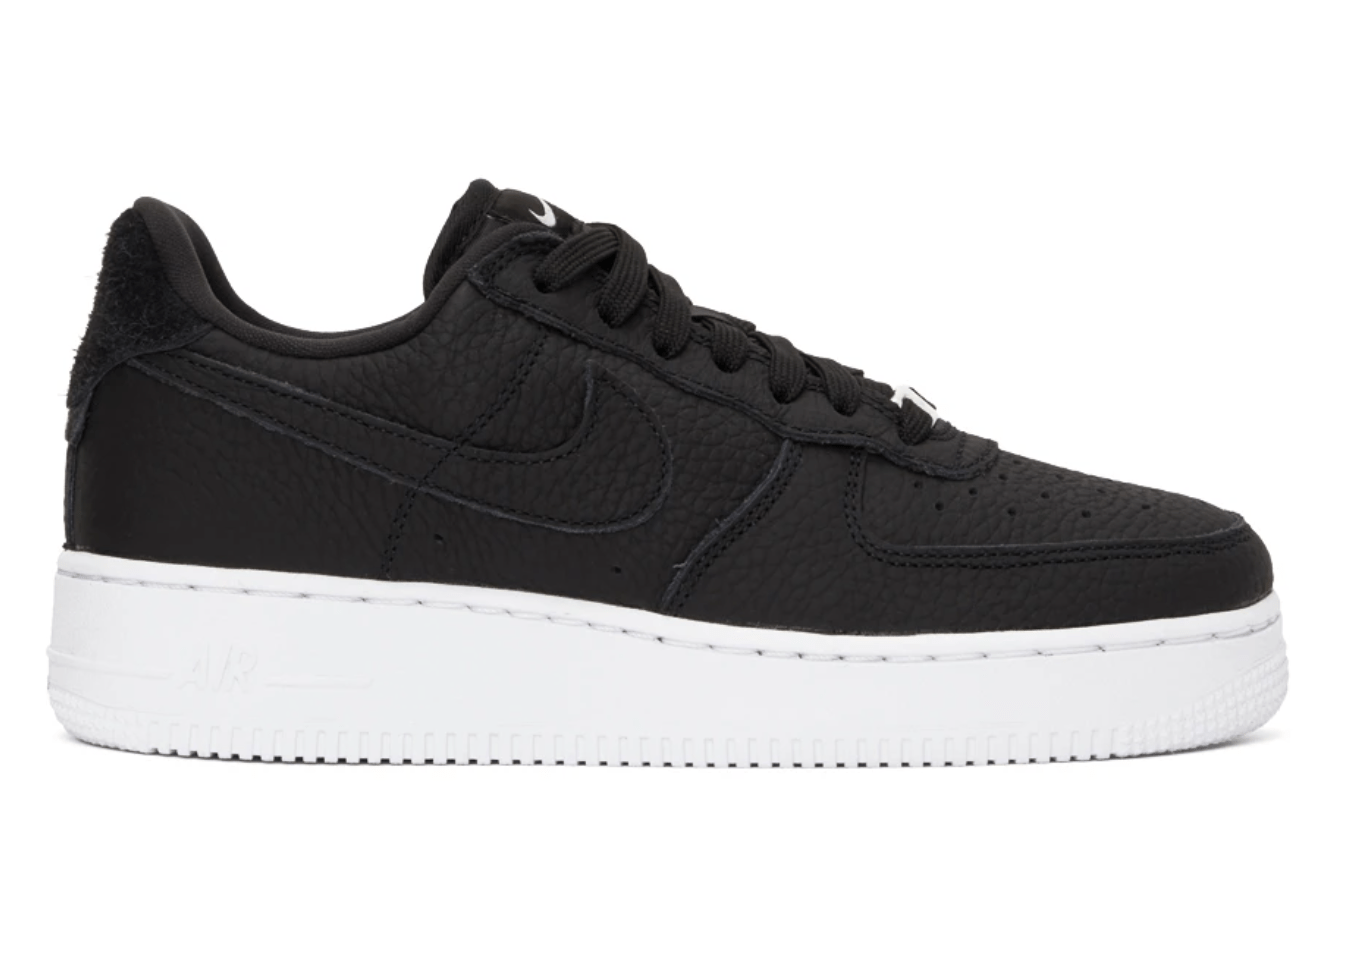 Black Air Force 1 '07 Craft in Black/White/Vast grey